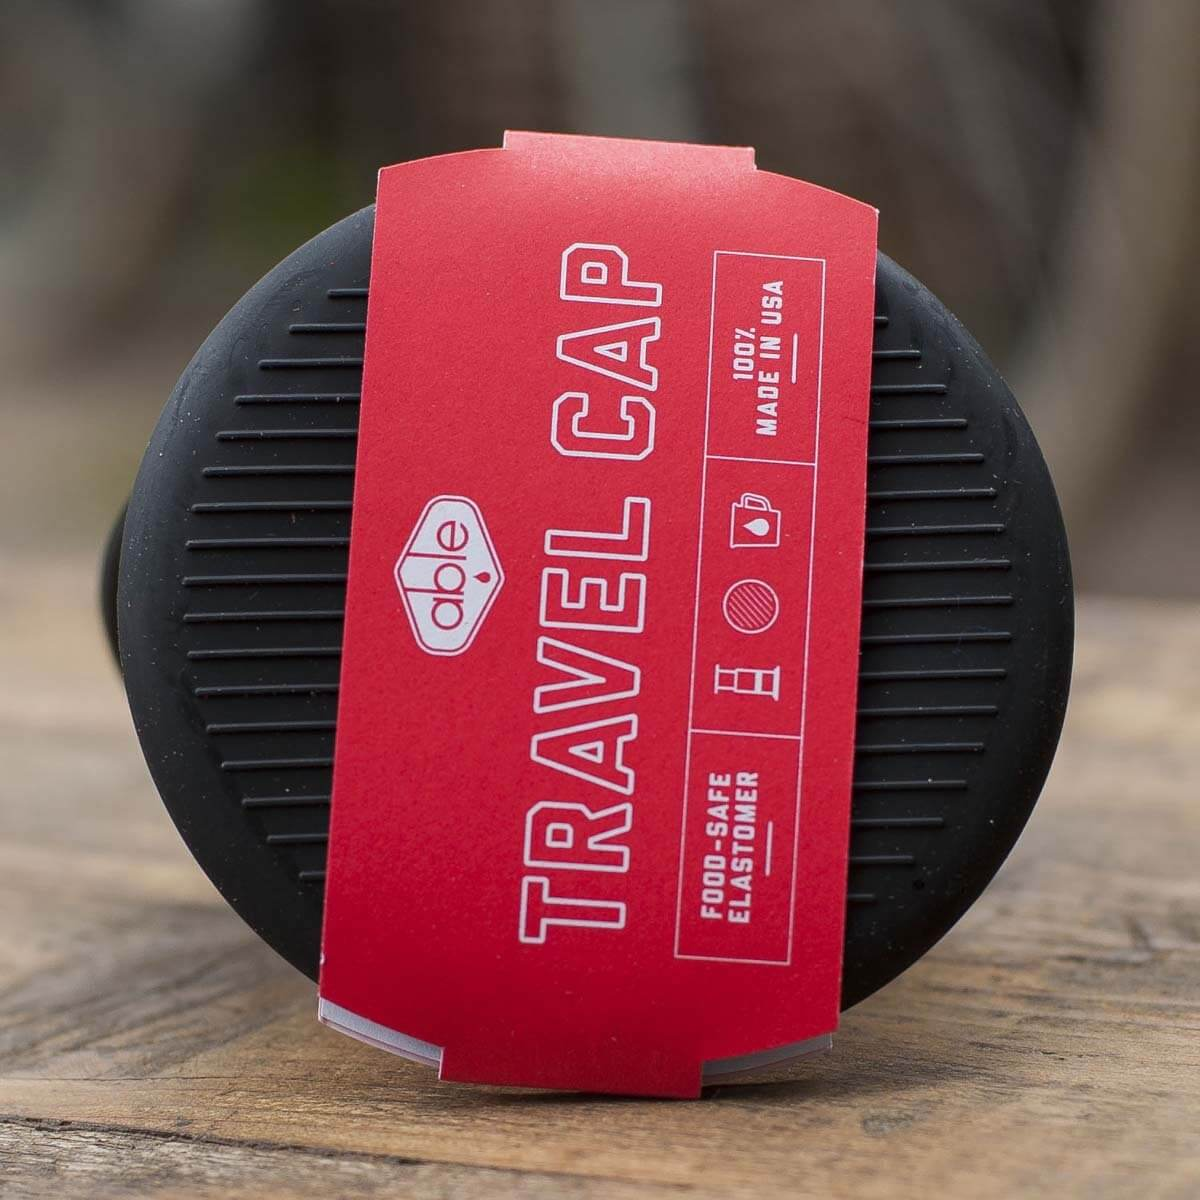 Able Travel Cap for AeroPress